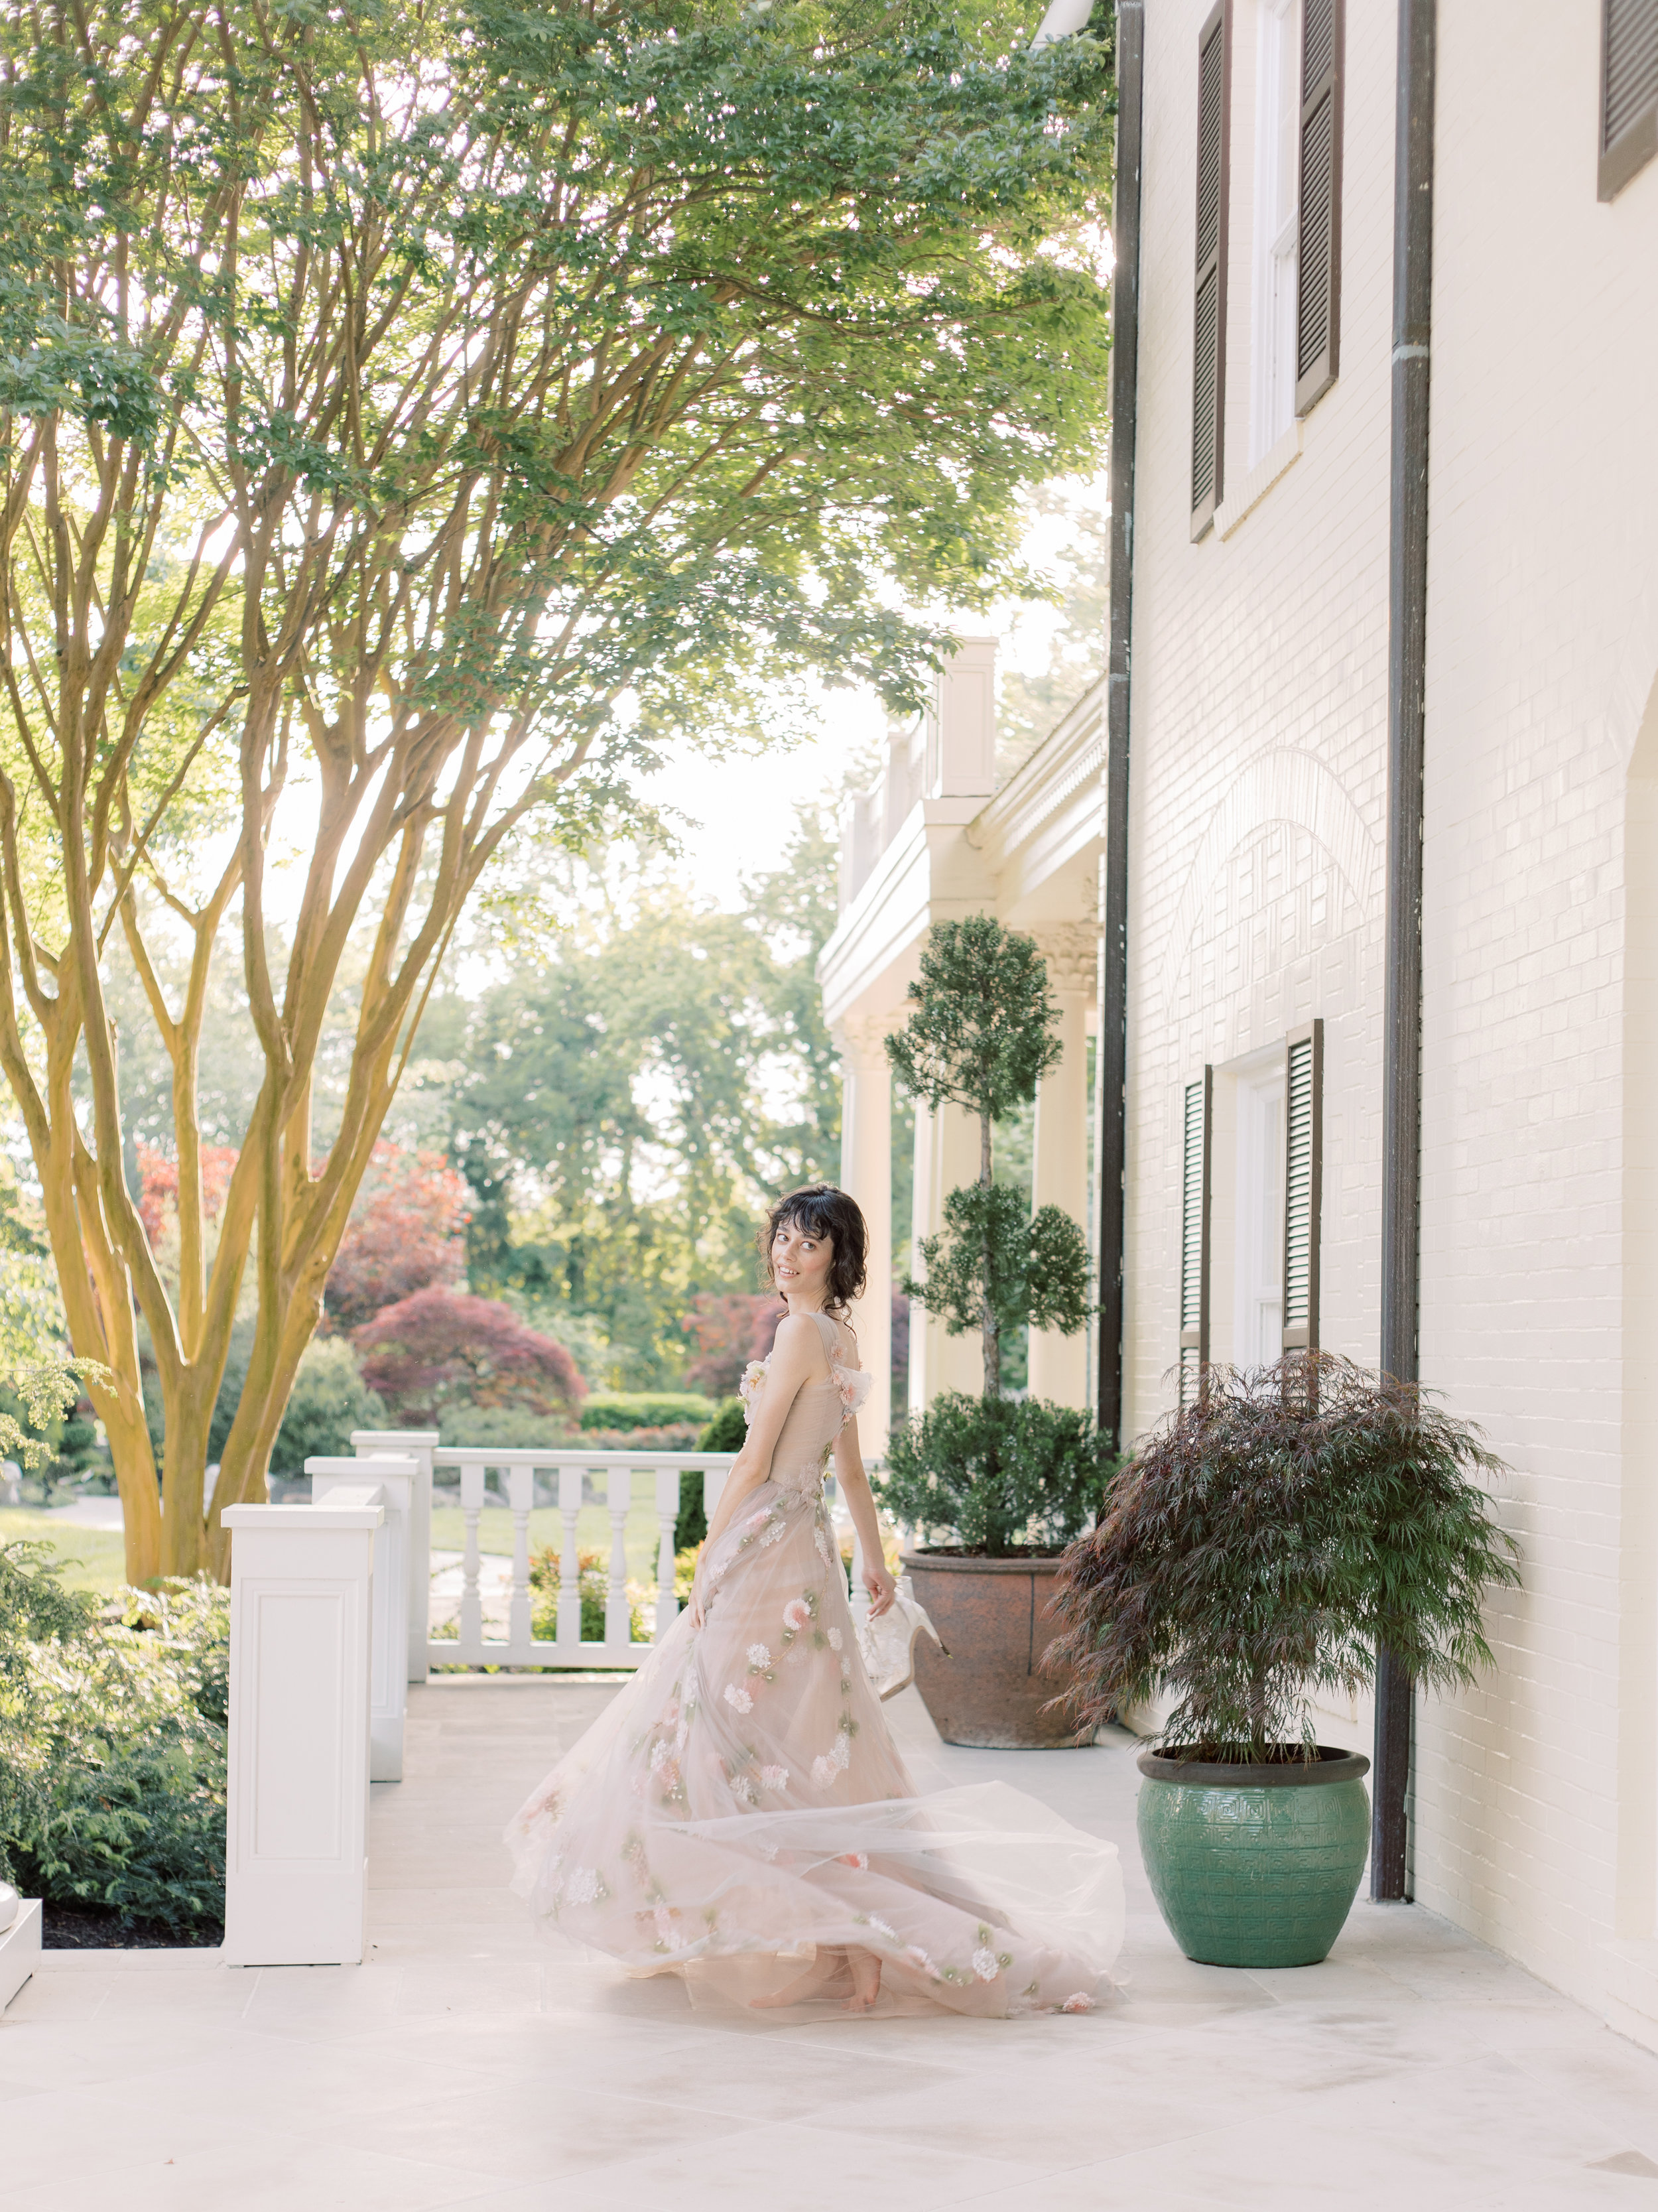 Faith Roper Photography and East Made Co Nashville wedding planner at the Estate at Cherokee Dock wedding inspired by Monet Hybrid Co-98.jpg